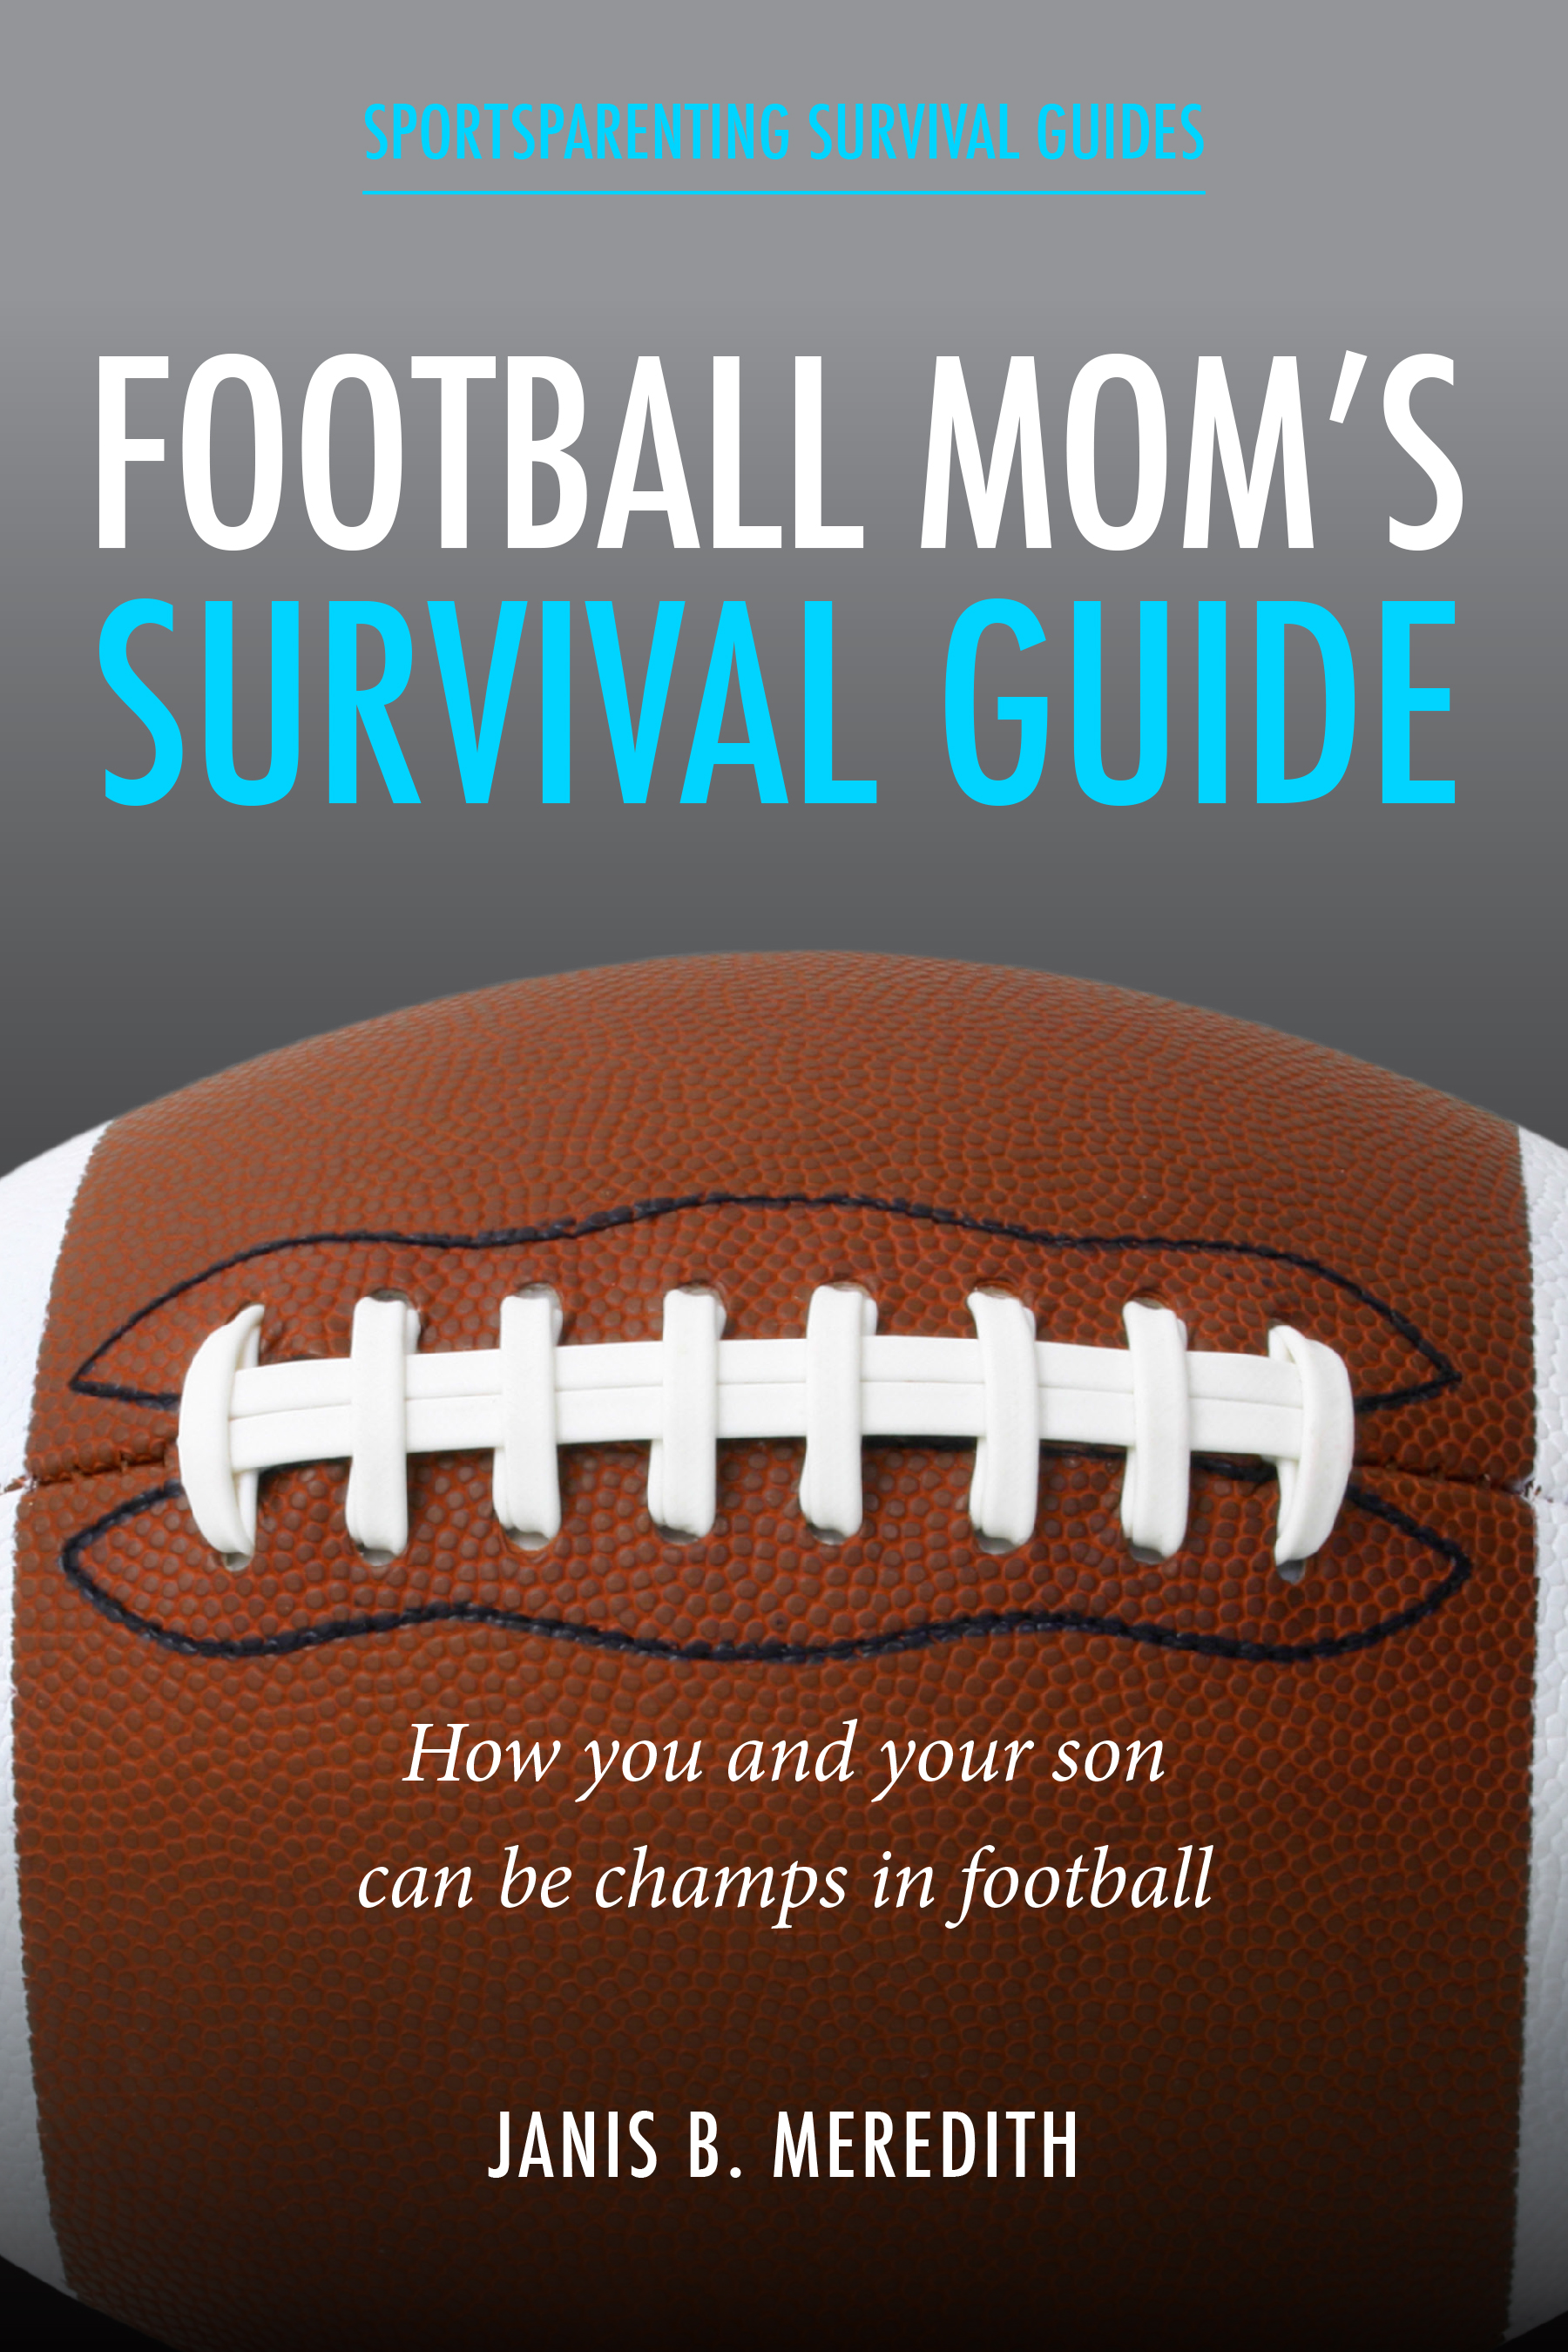 Football Mom's Survival Guide